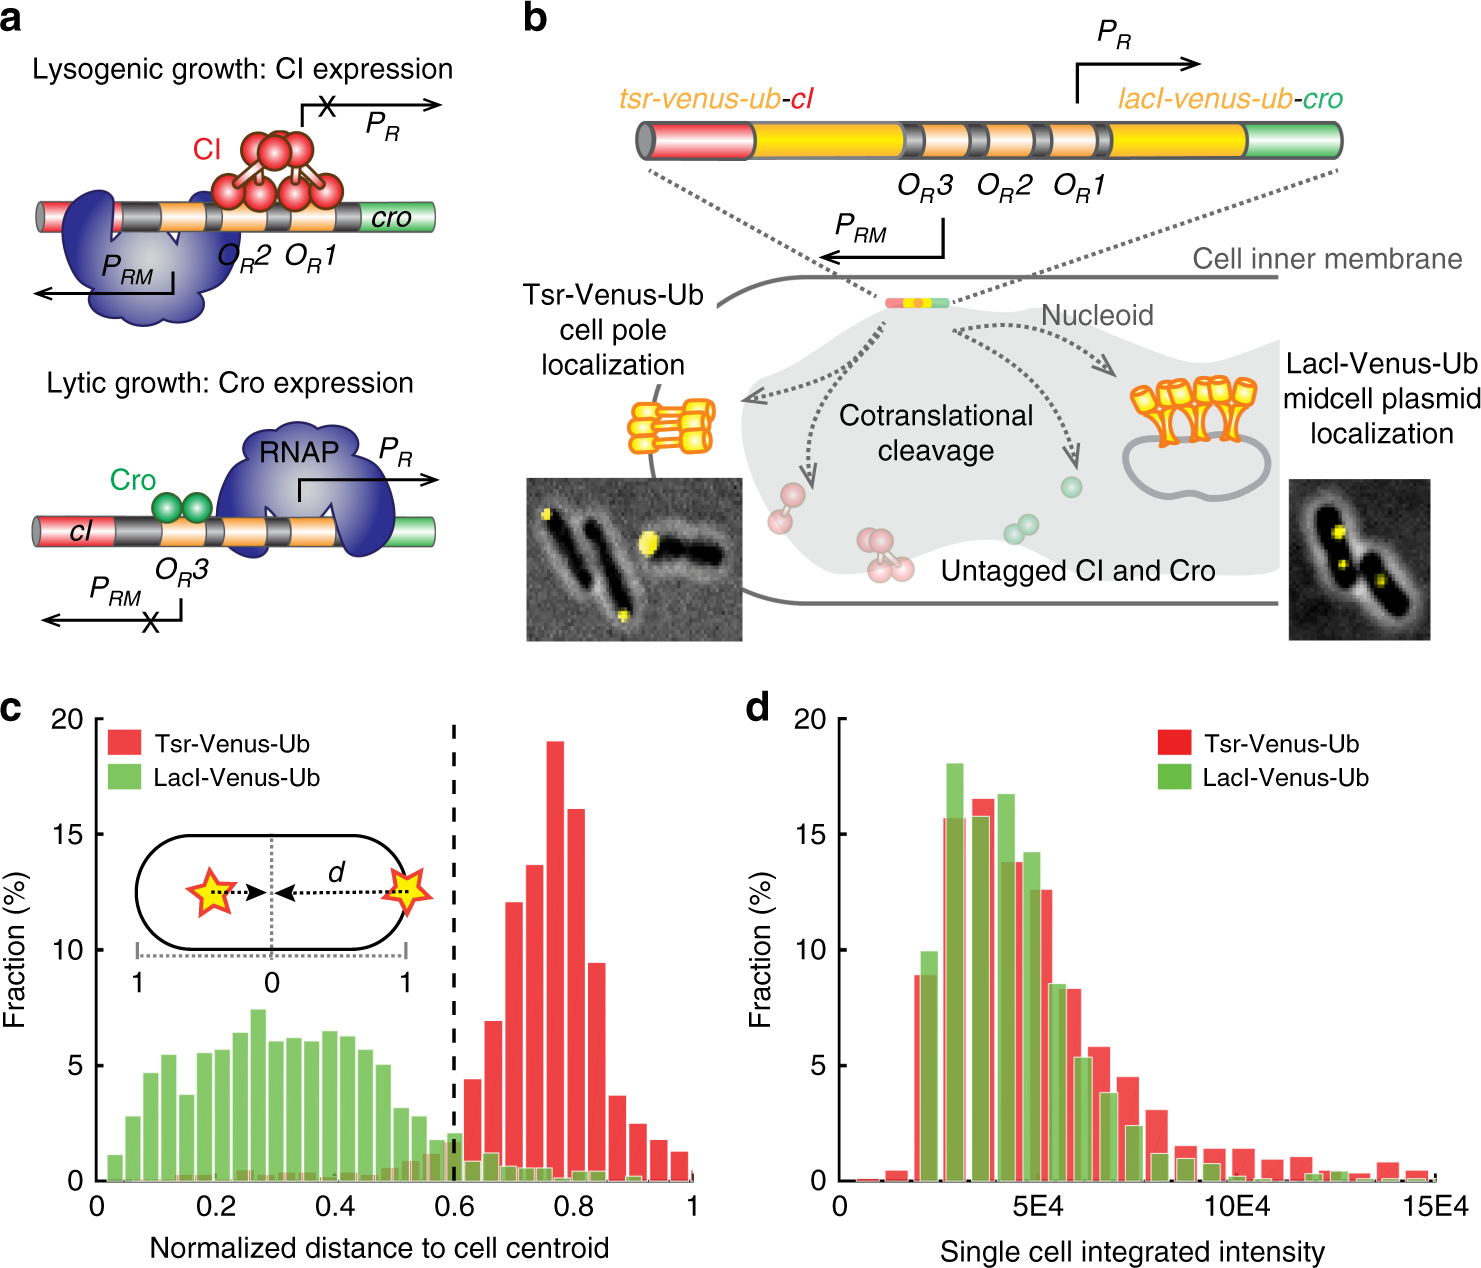 Cell Fate Potentials And Switching Kinetics Uncovered In A Classic Basic Controls Of Cro Bistable Genetic Switch Nature Communications